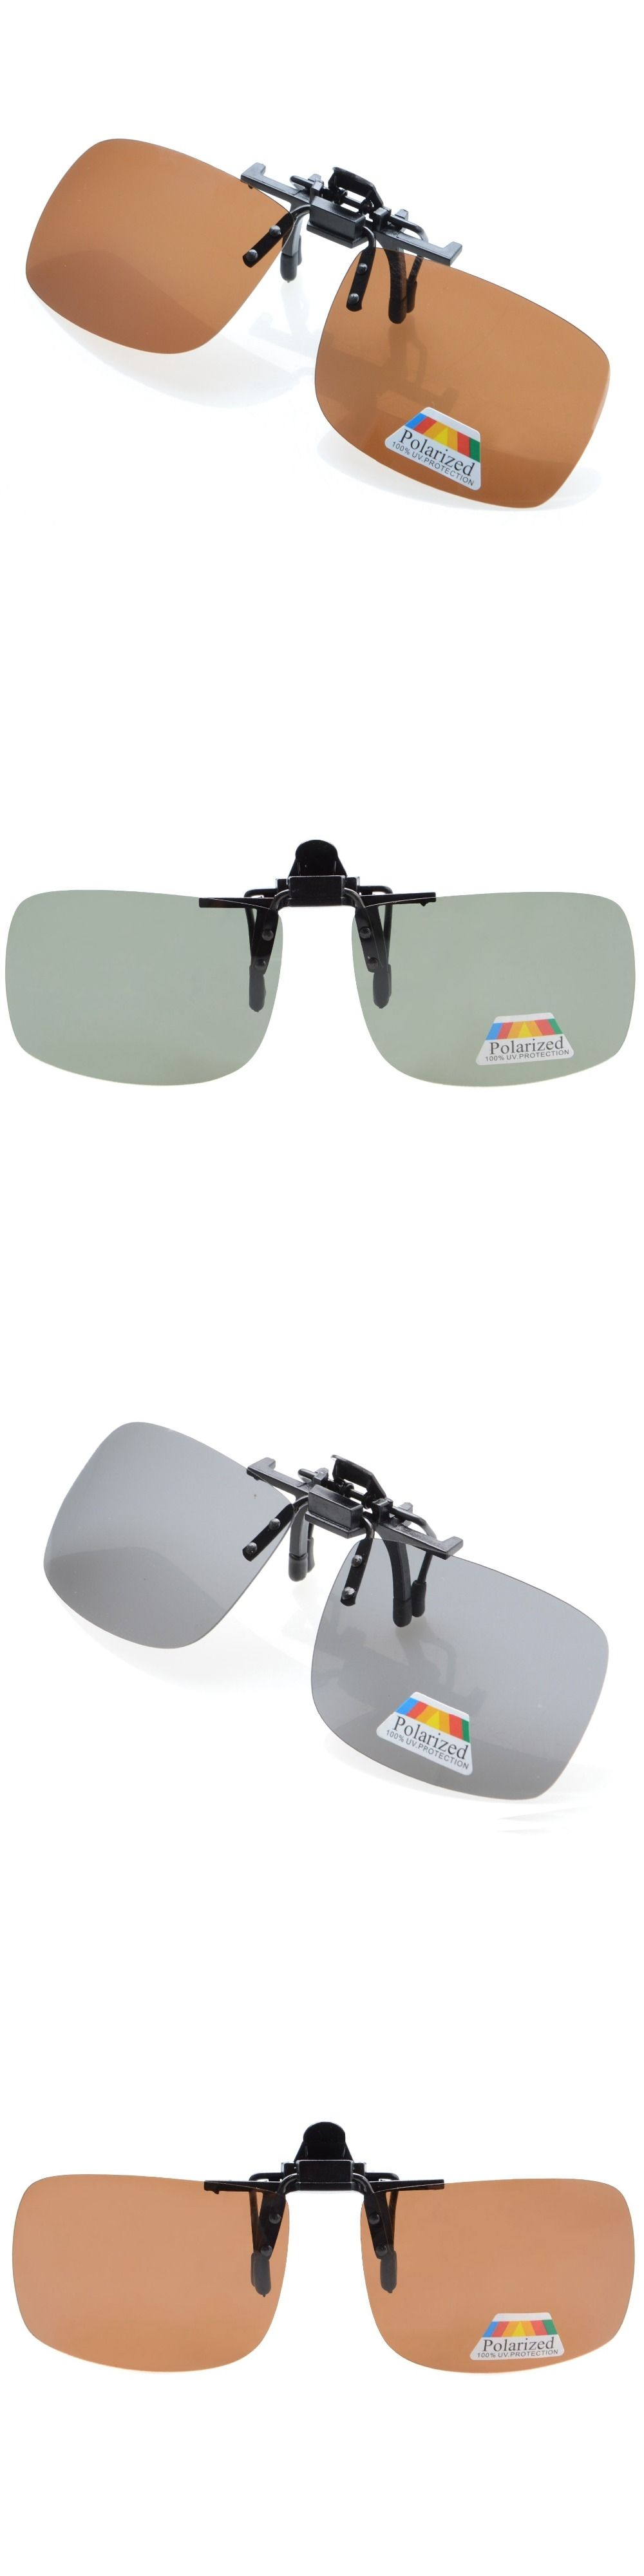 888bde354b F68 Eyekepper Rectangular Flip up Polarized Clip-on Sunglasses ...